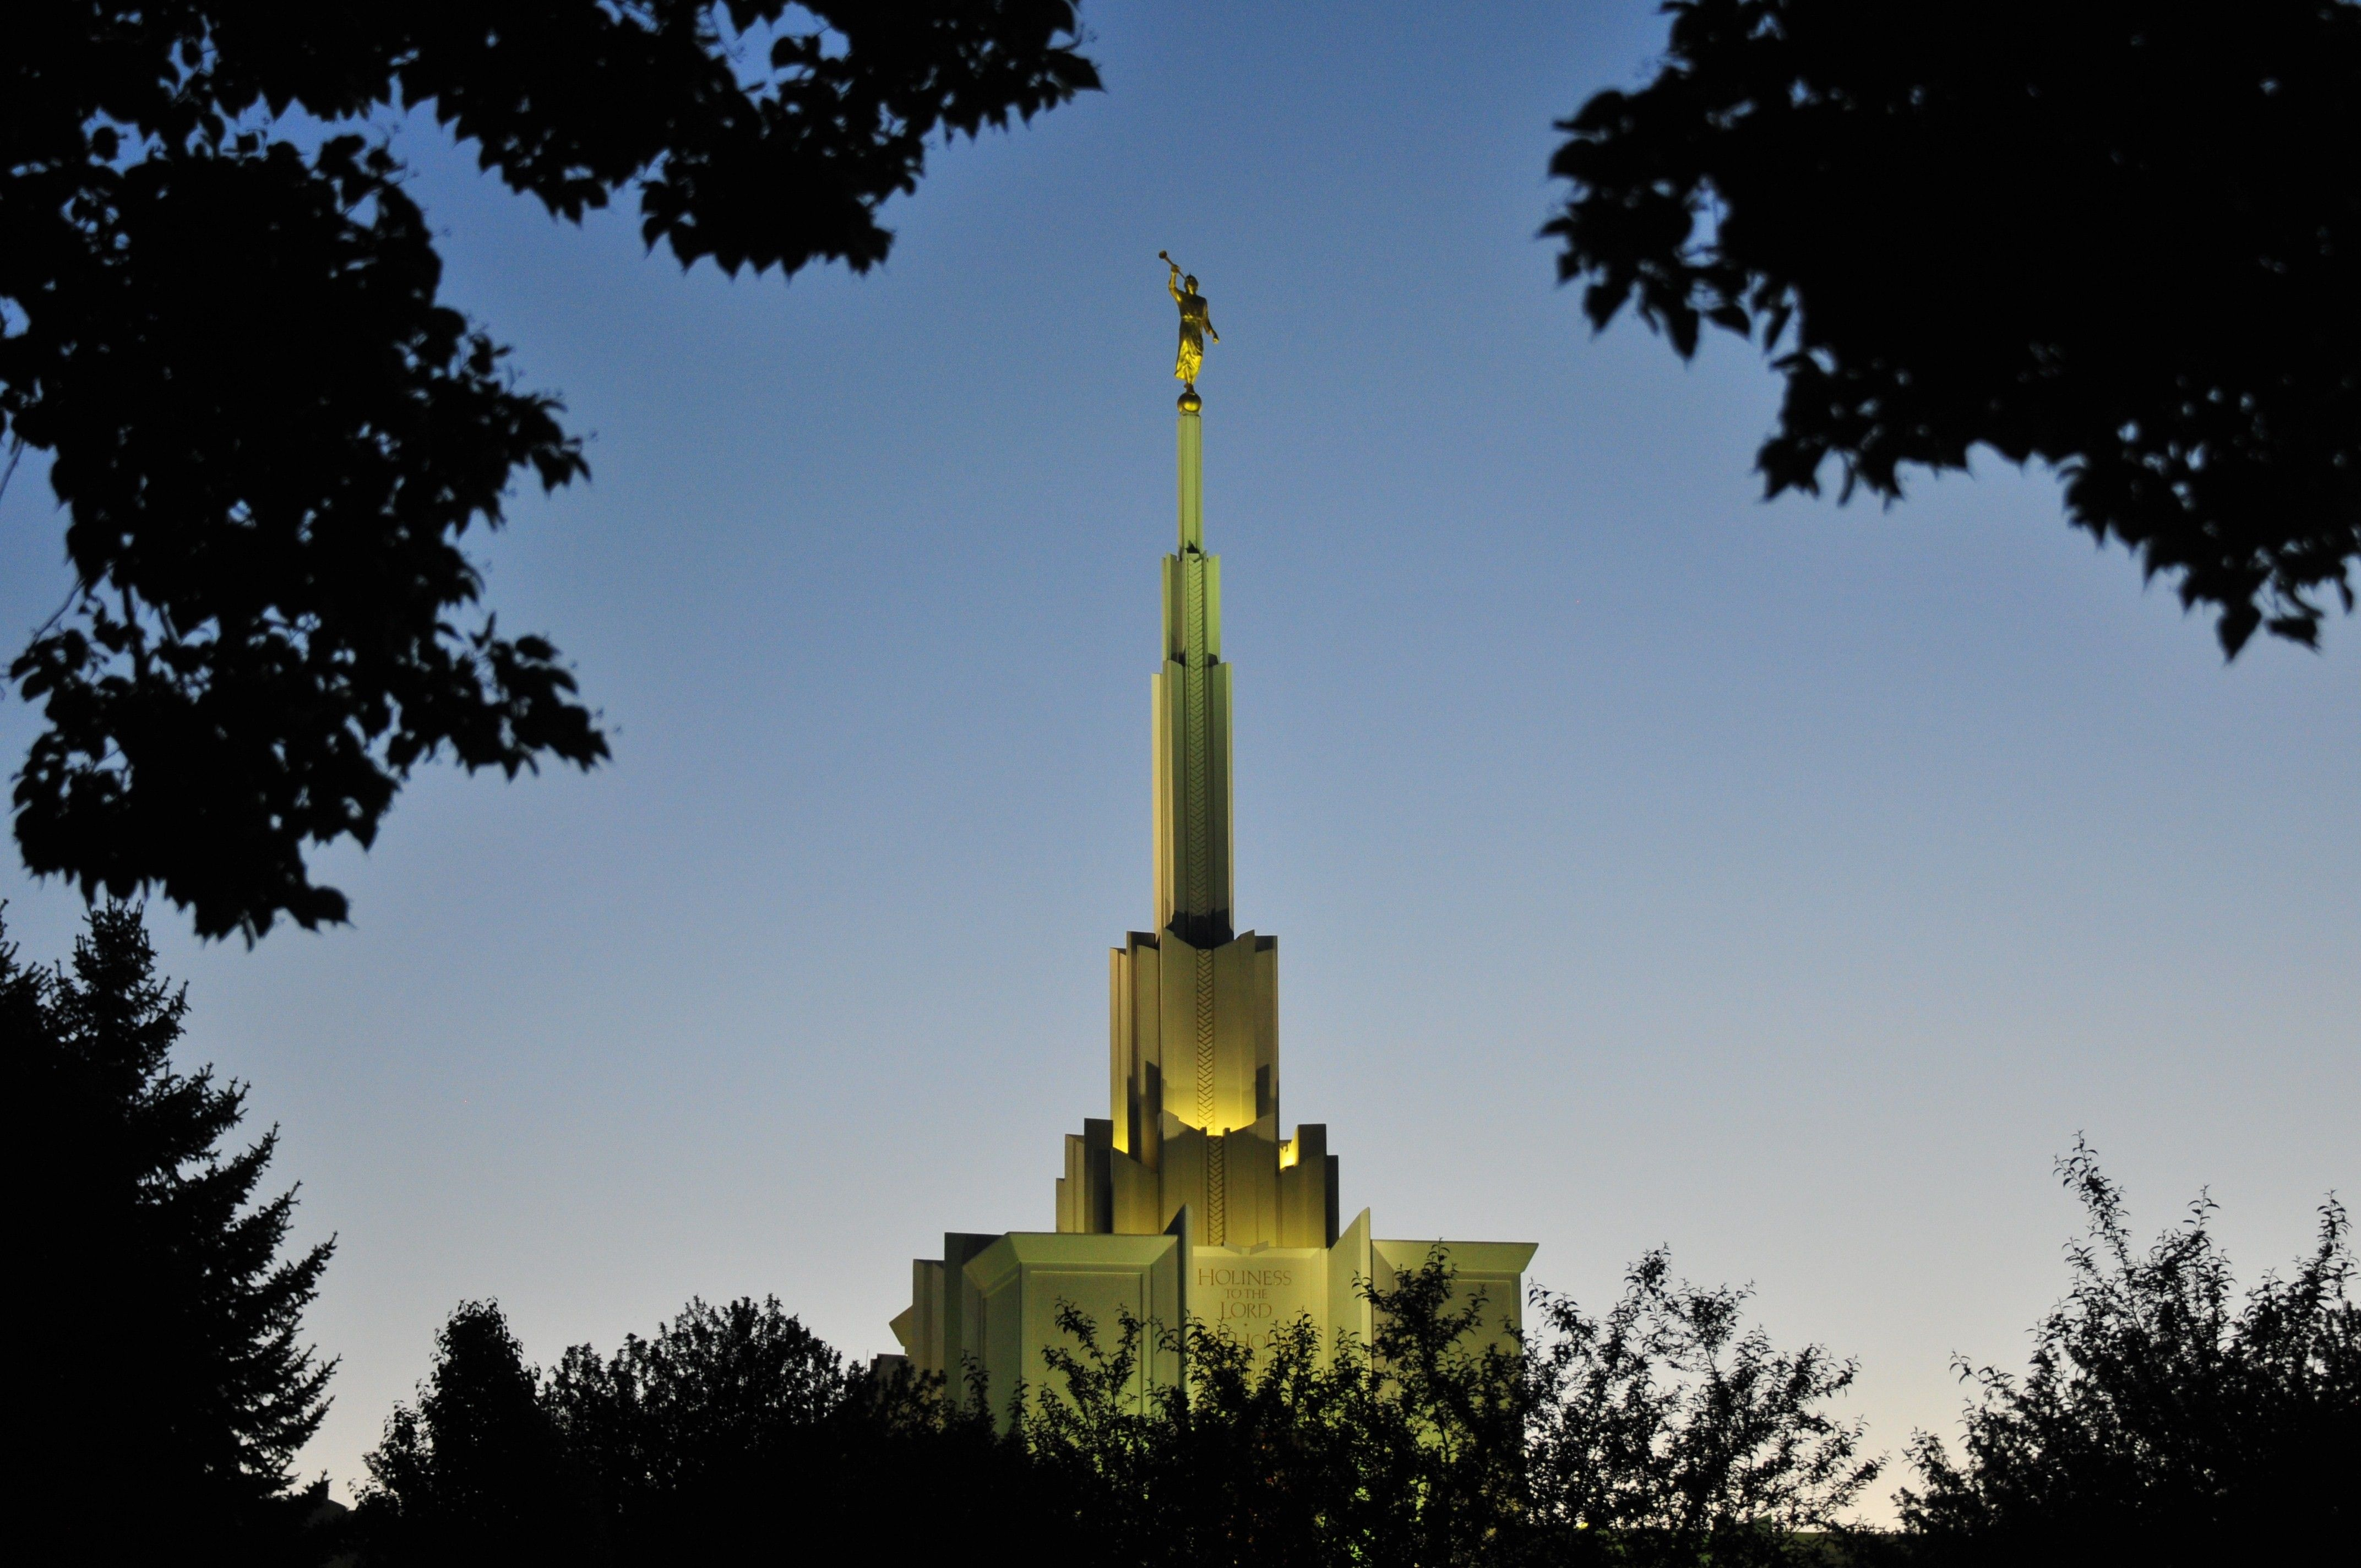 The spire of the Denver Colorado Temple is lit up at night.